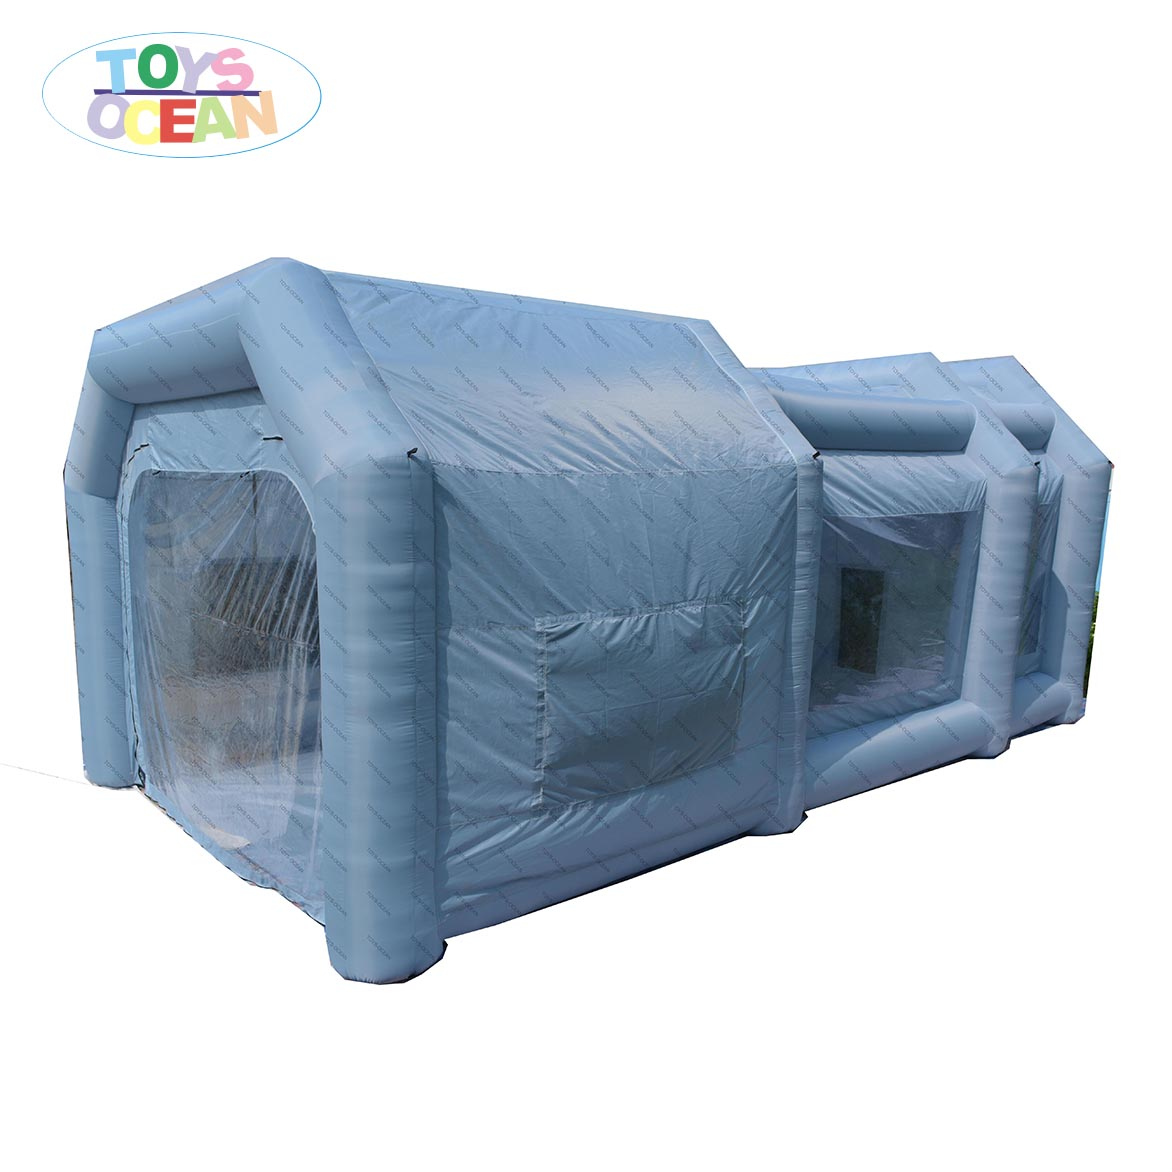 oxford material Car Inflatable Spray Booth Painting room with filter filtro para cabina de pintura